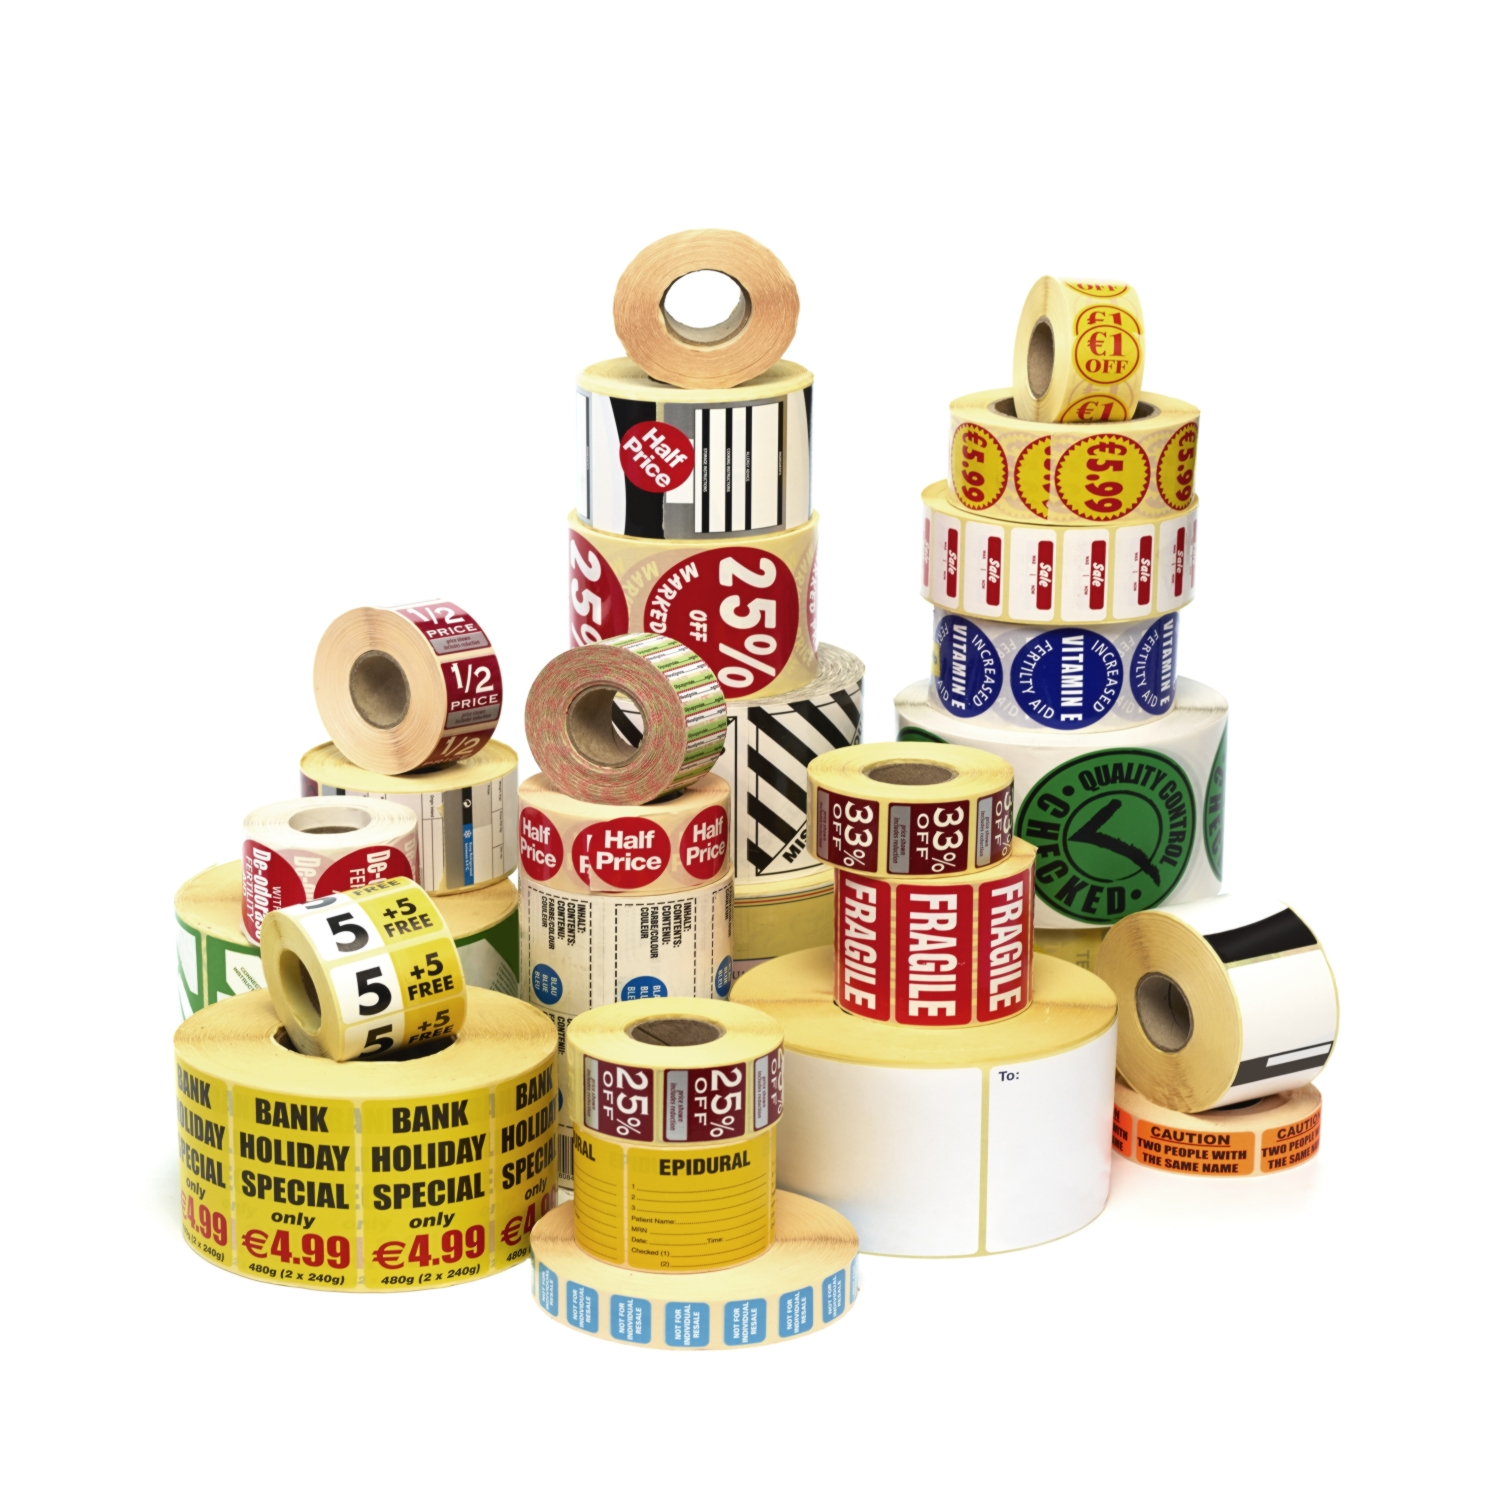 Stickers & Labels with Branded Logos and Text.